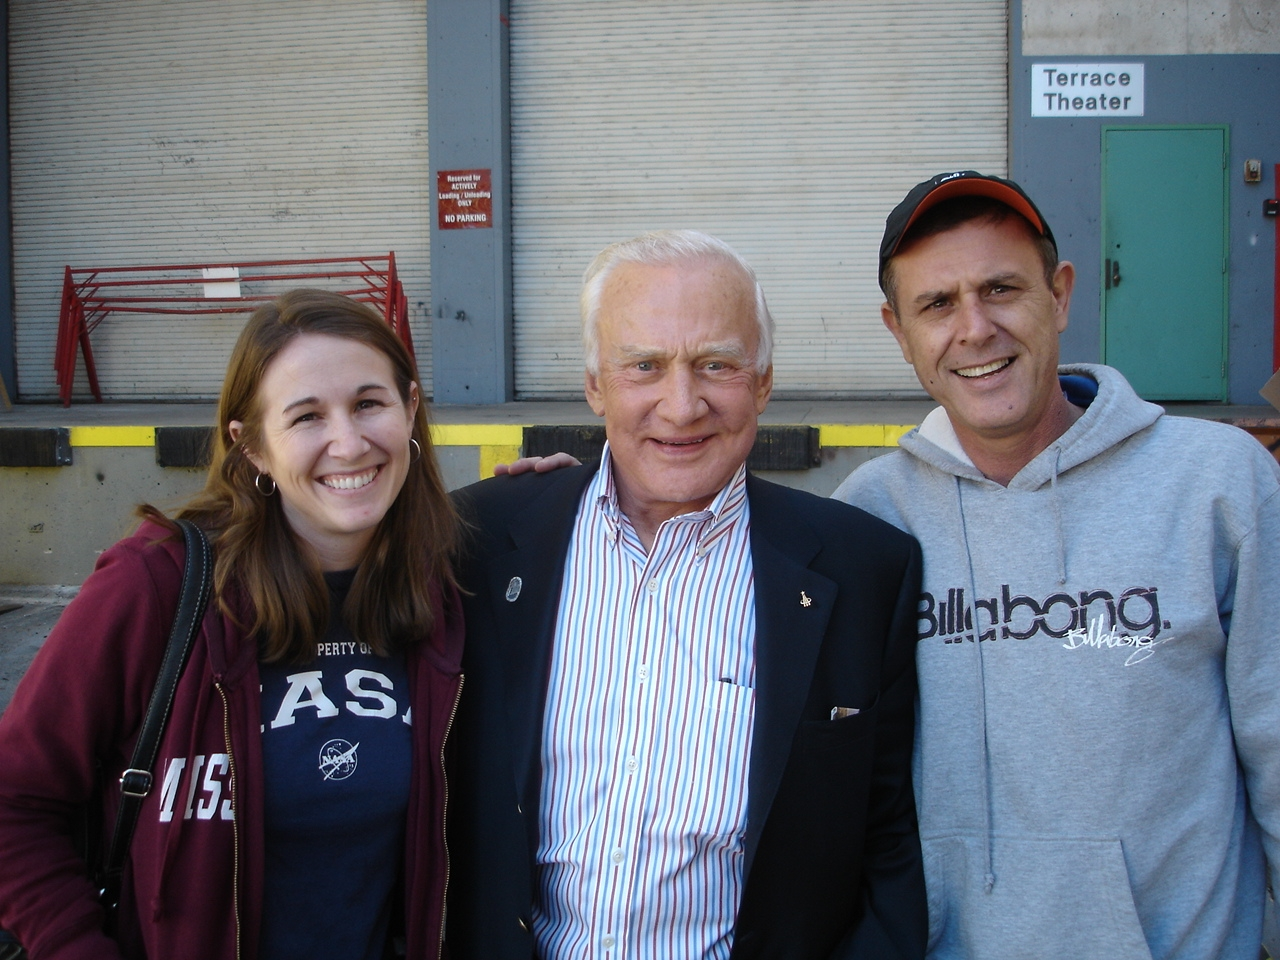 Mrs. Bobo, Buzz Aldrin, and Mr. Loveall in Long Beach 2011